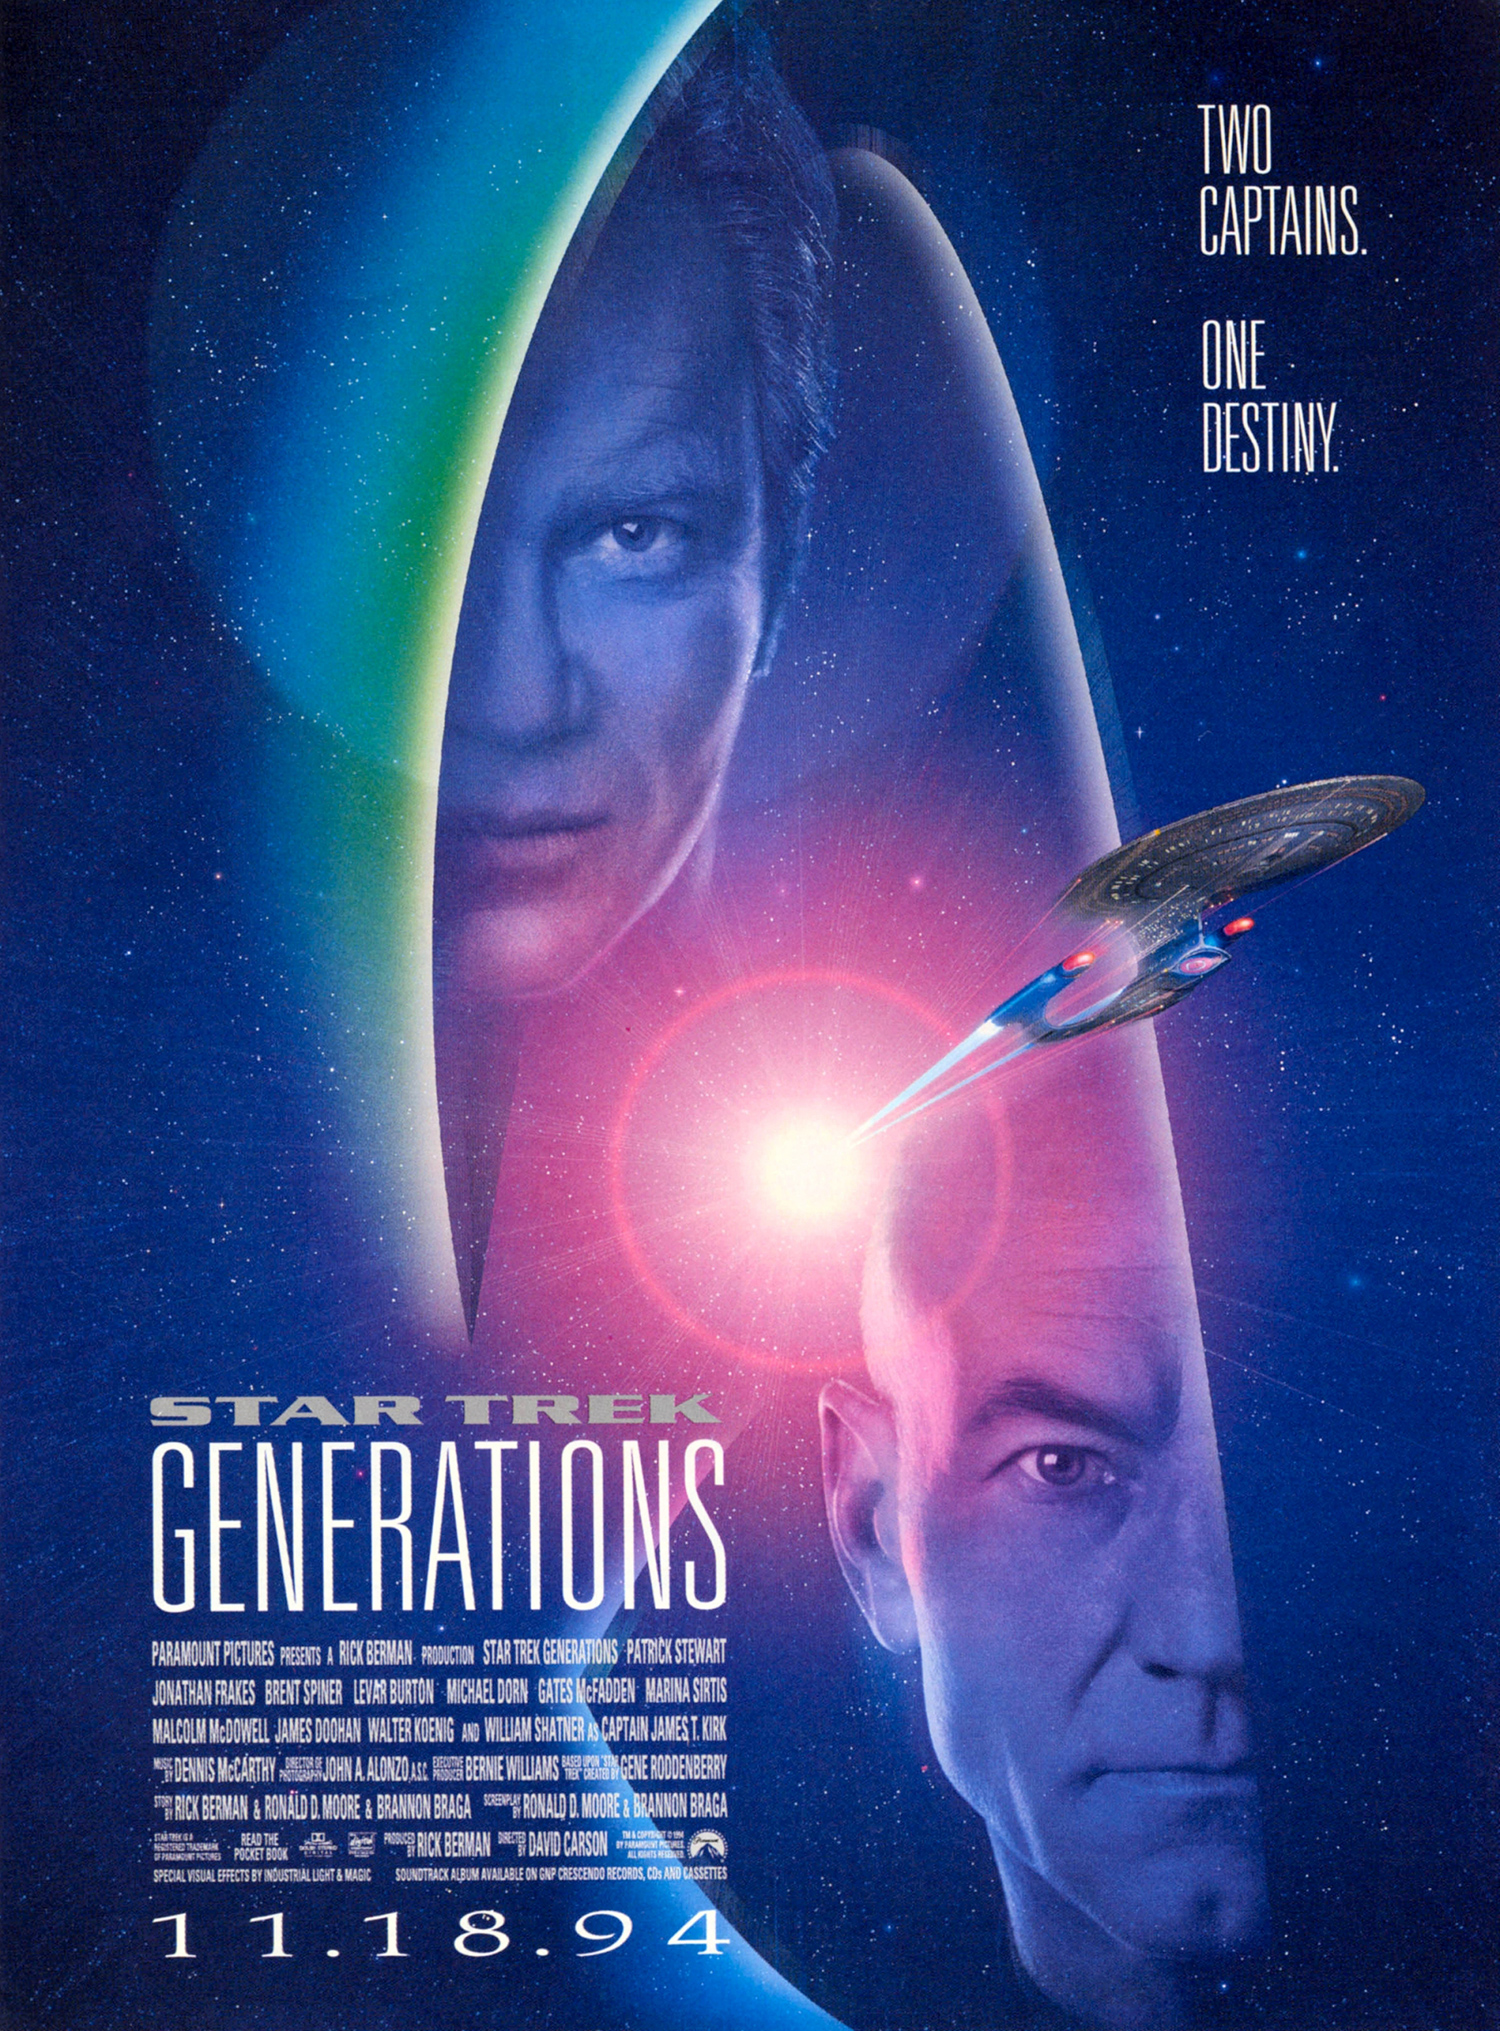 """Star Trek Generations"" theatrical poster."